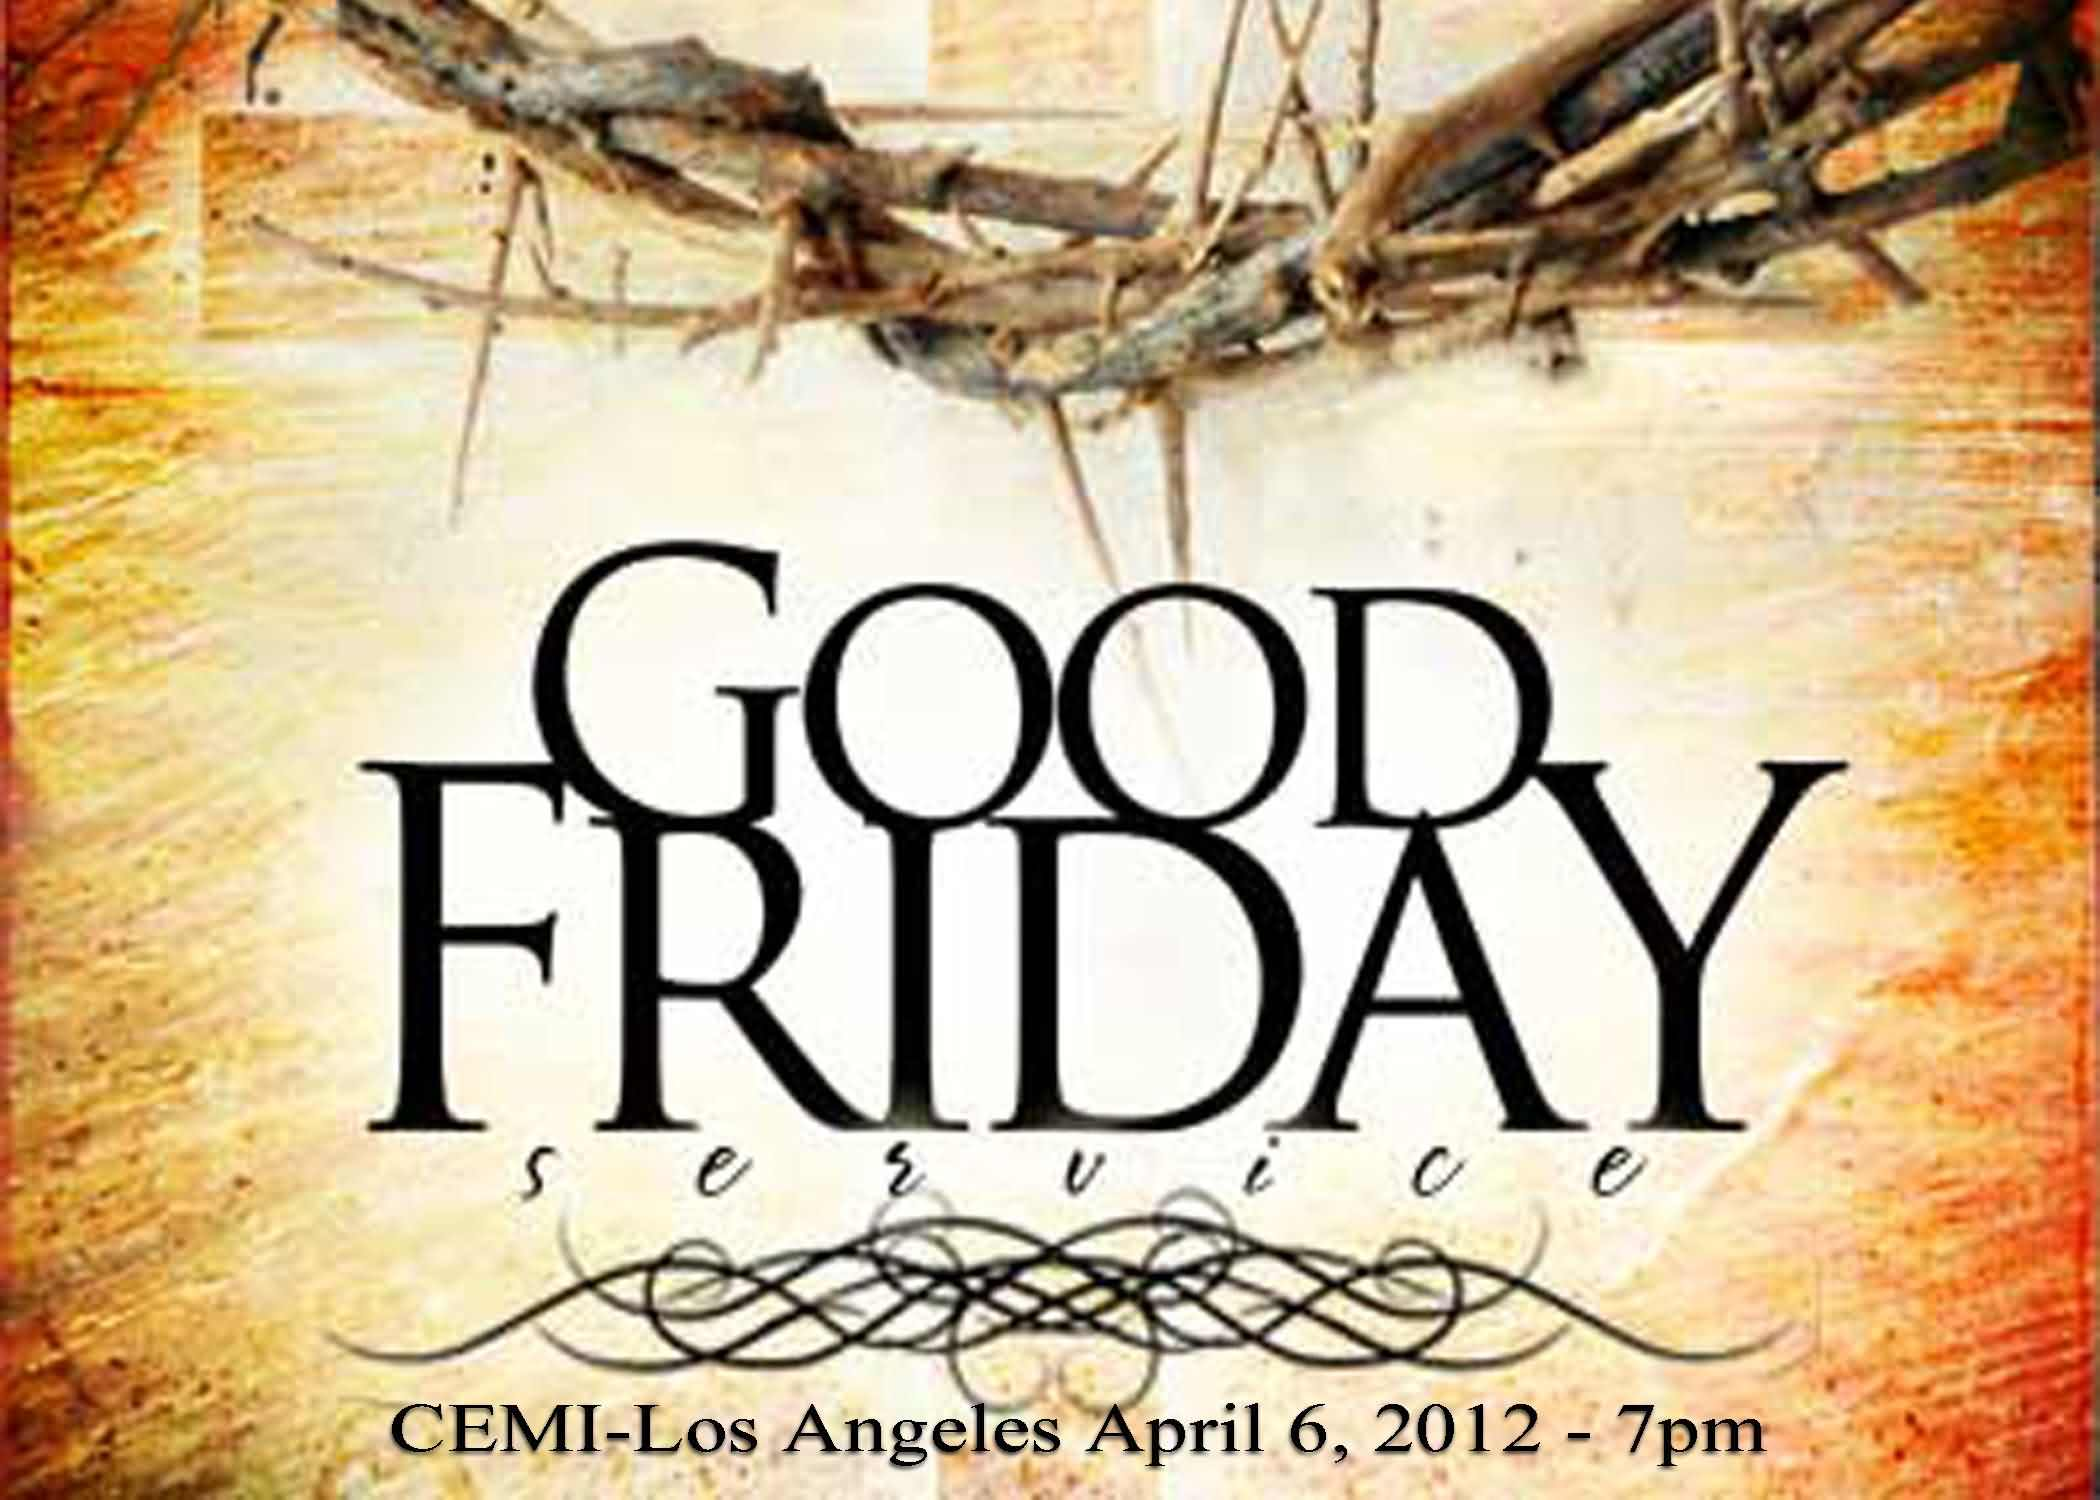 2-Good Friday Wishes